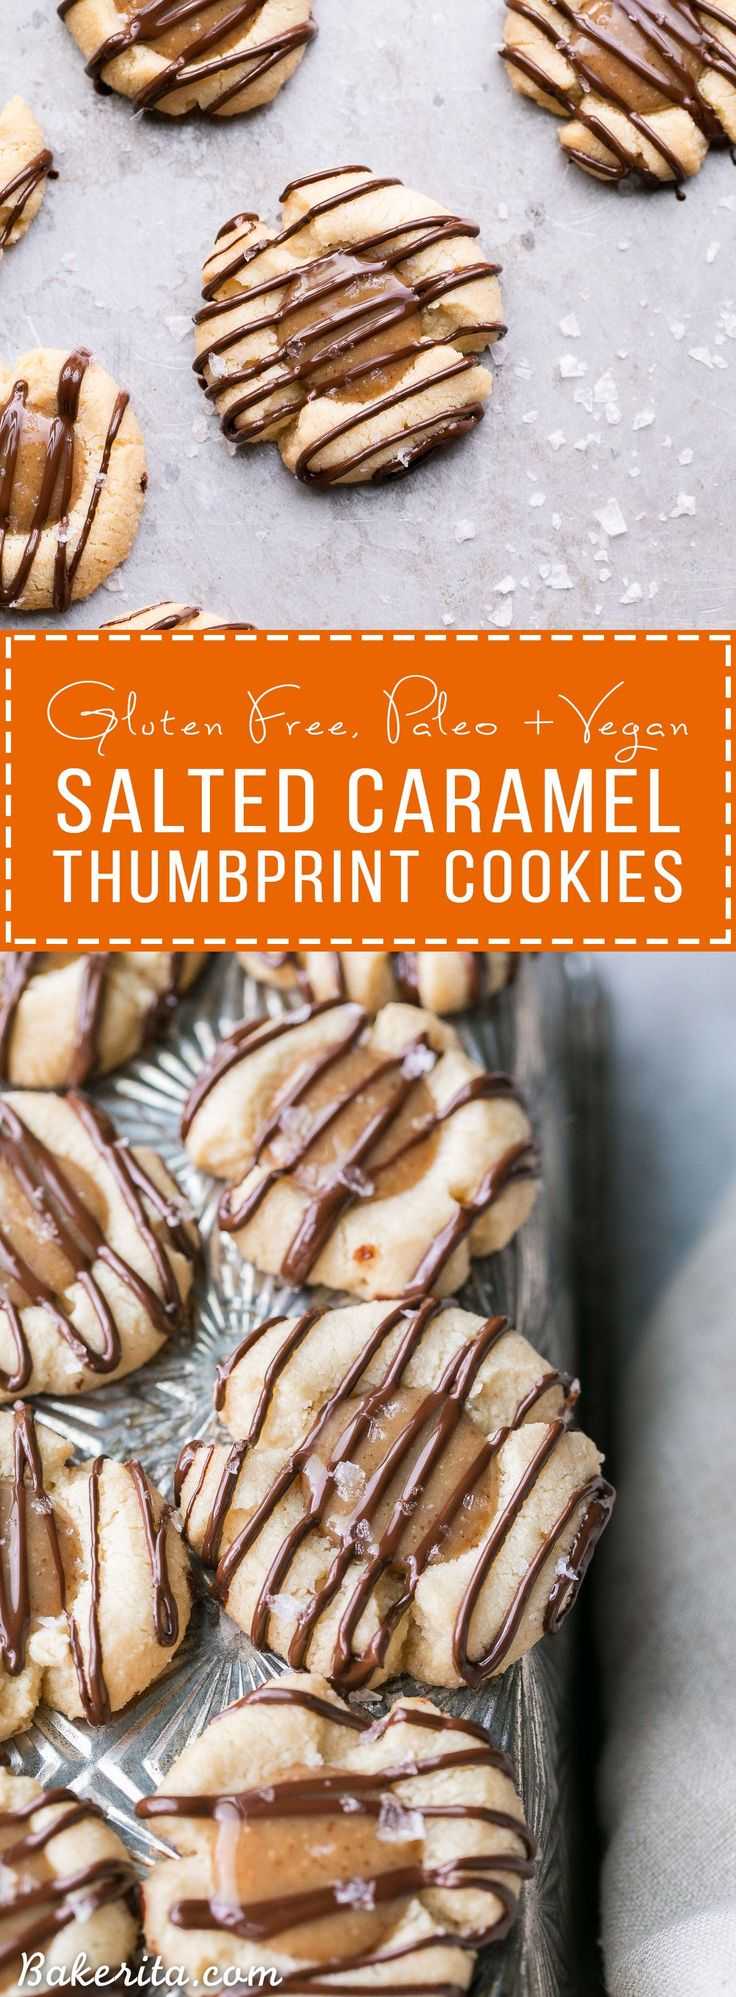 These Salted Caramel Thumbprint Cookies are super easy to make with only 6 ingre...